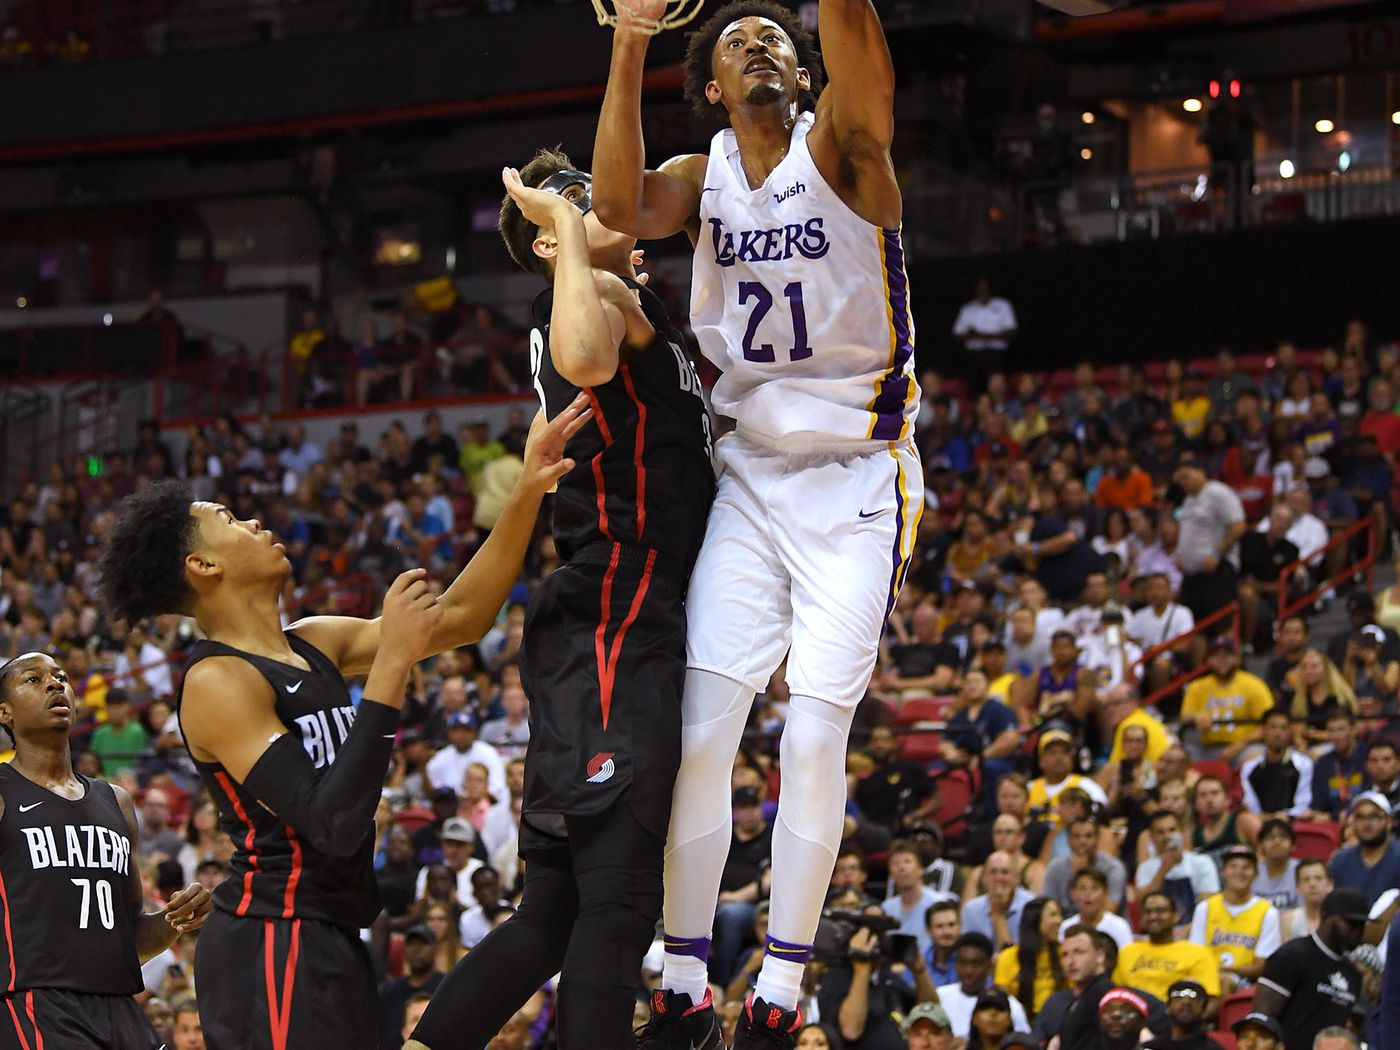 097531e7154 Lakers add Johnathan Williams to training camp roster - Silver Screen and  Roll